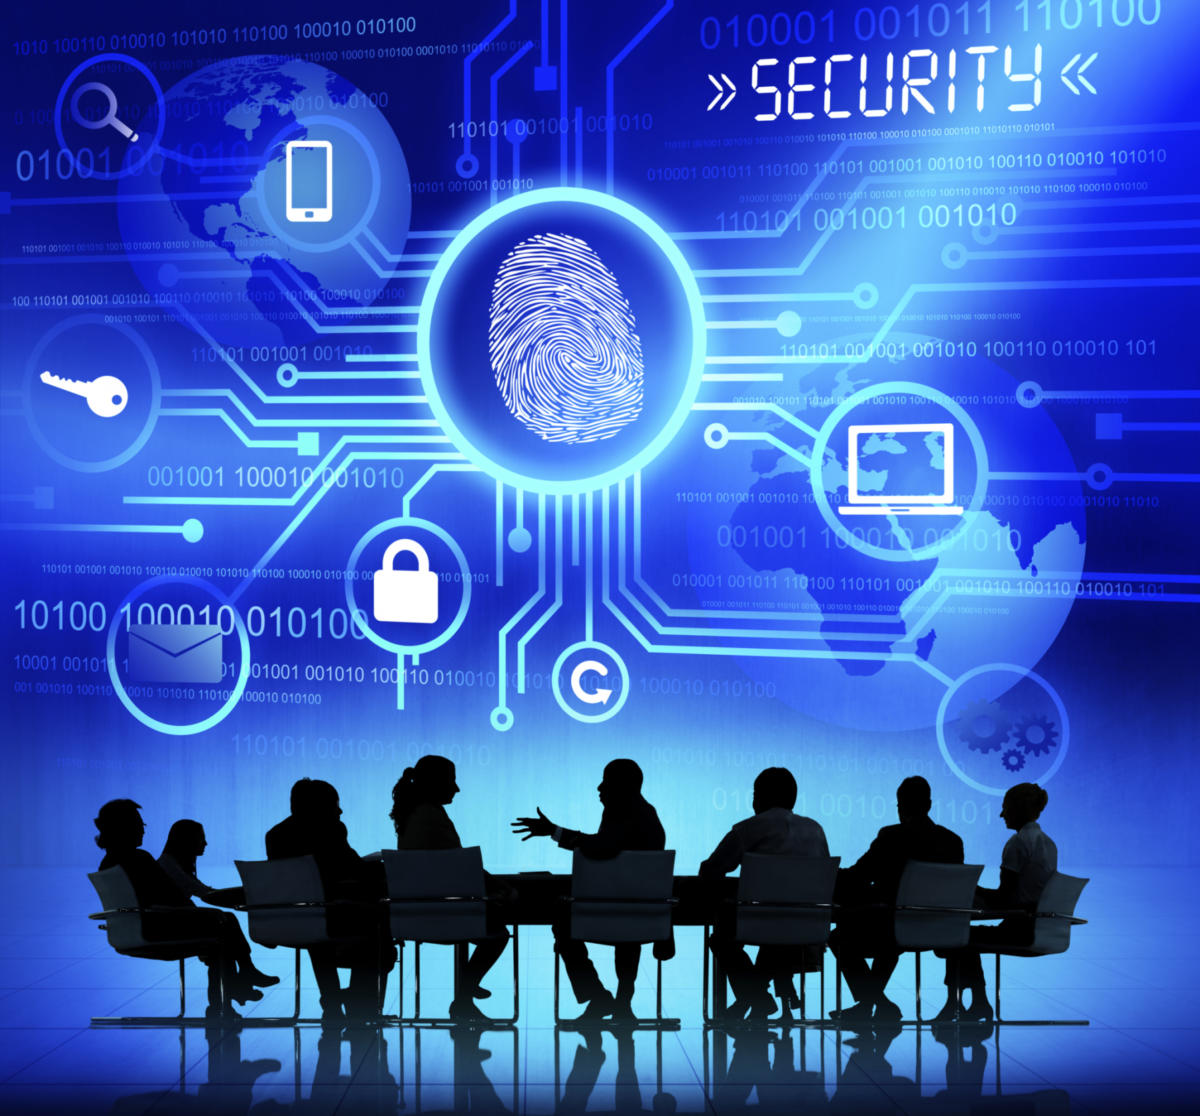 cybersecurity awareness training security data privacy gdpr iot infosec protection computer tech it